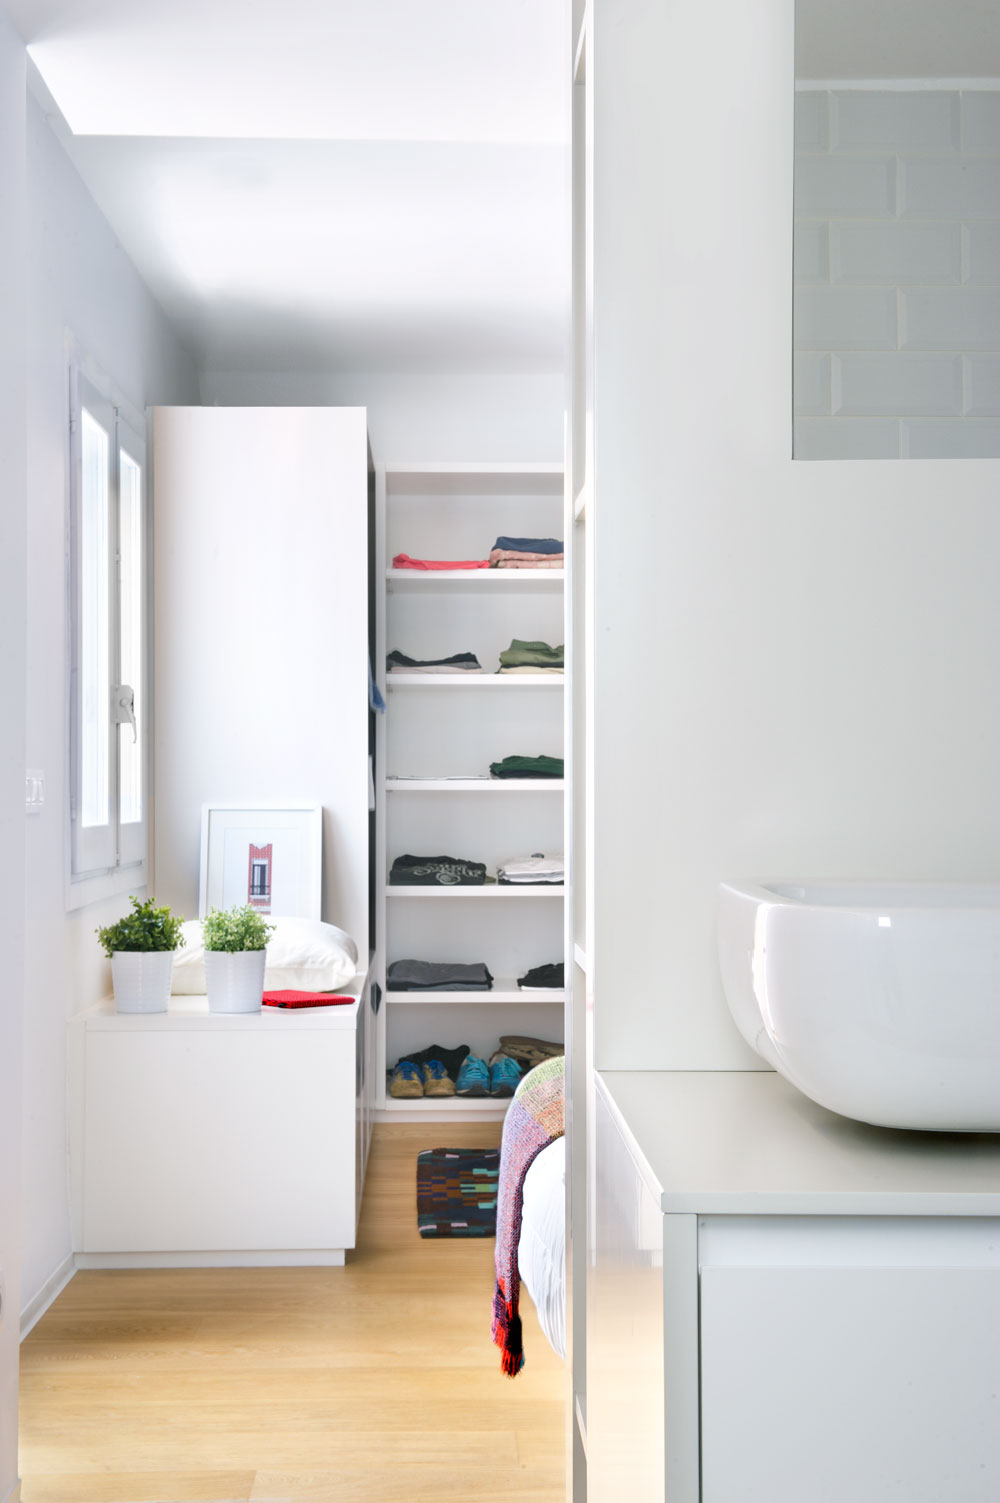 Simple and plain lines and colors on the cabinets show the minimalist side of this design. The open closet exposing the contents gives it a little twist.